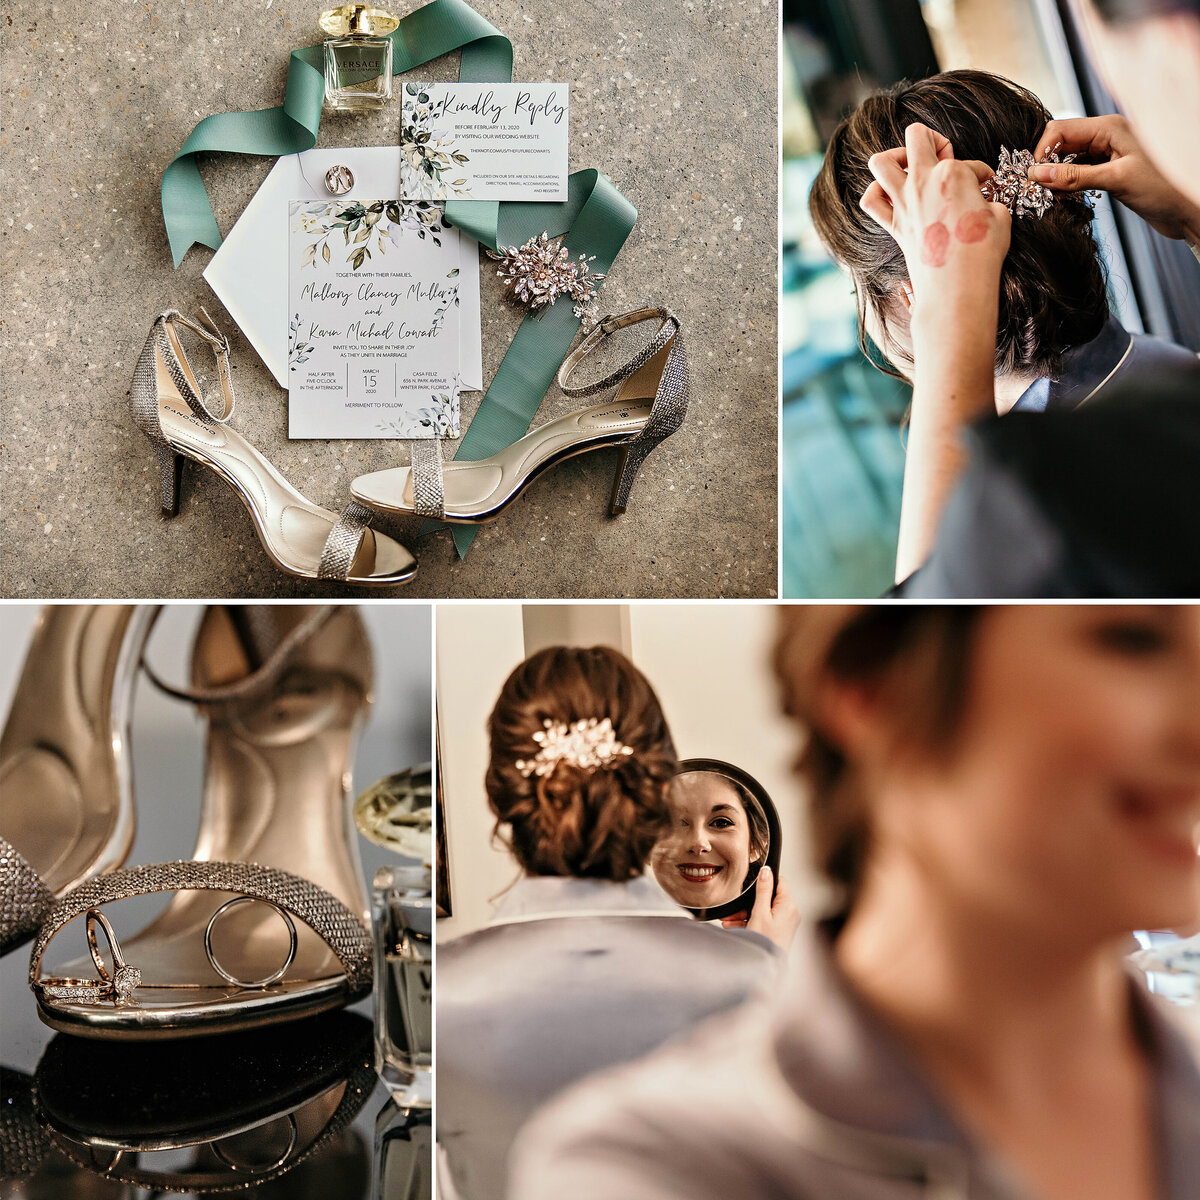 An image of the bride's silver heels and hair accessory resting beside the wedding invitation, the hairdresser applying the bride's hair trim, the wedding rings resting on the bride's shoe, and the bride checking her hair in the mirror by Garry & Stacy Photography Co - Tampa wedding photography and videography